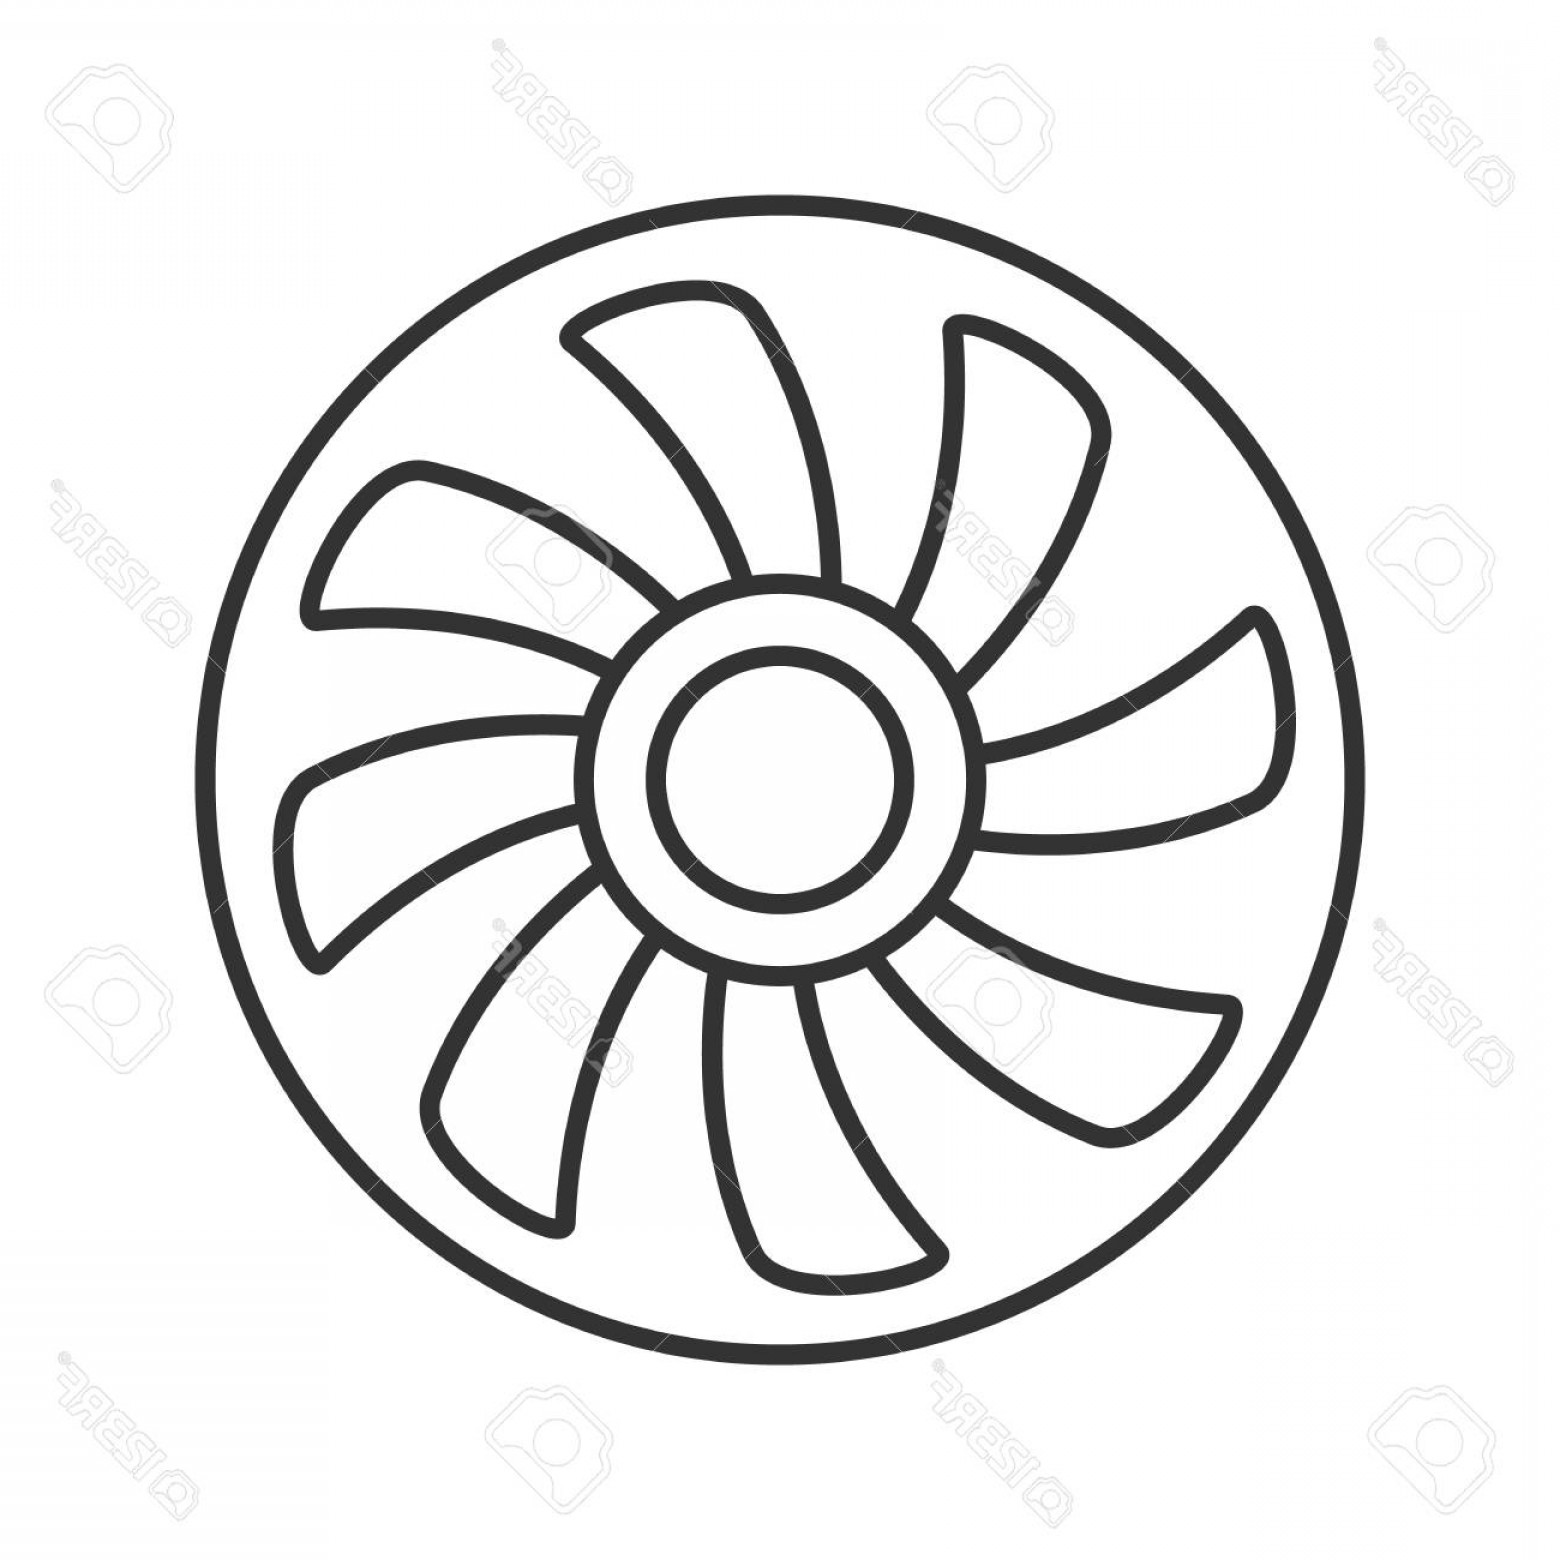 Exhaust Fan Symbol Drawing At Getdrawings Com Free For